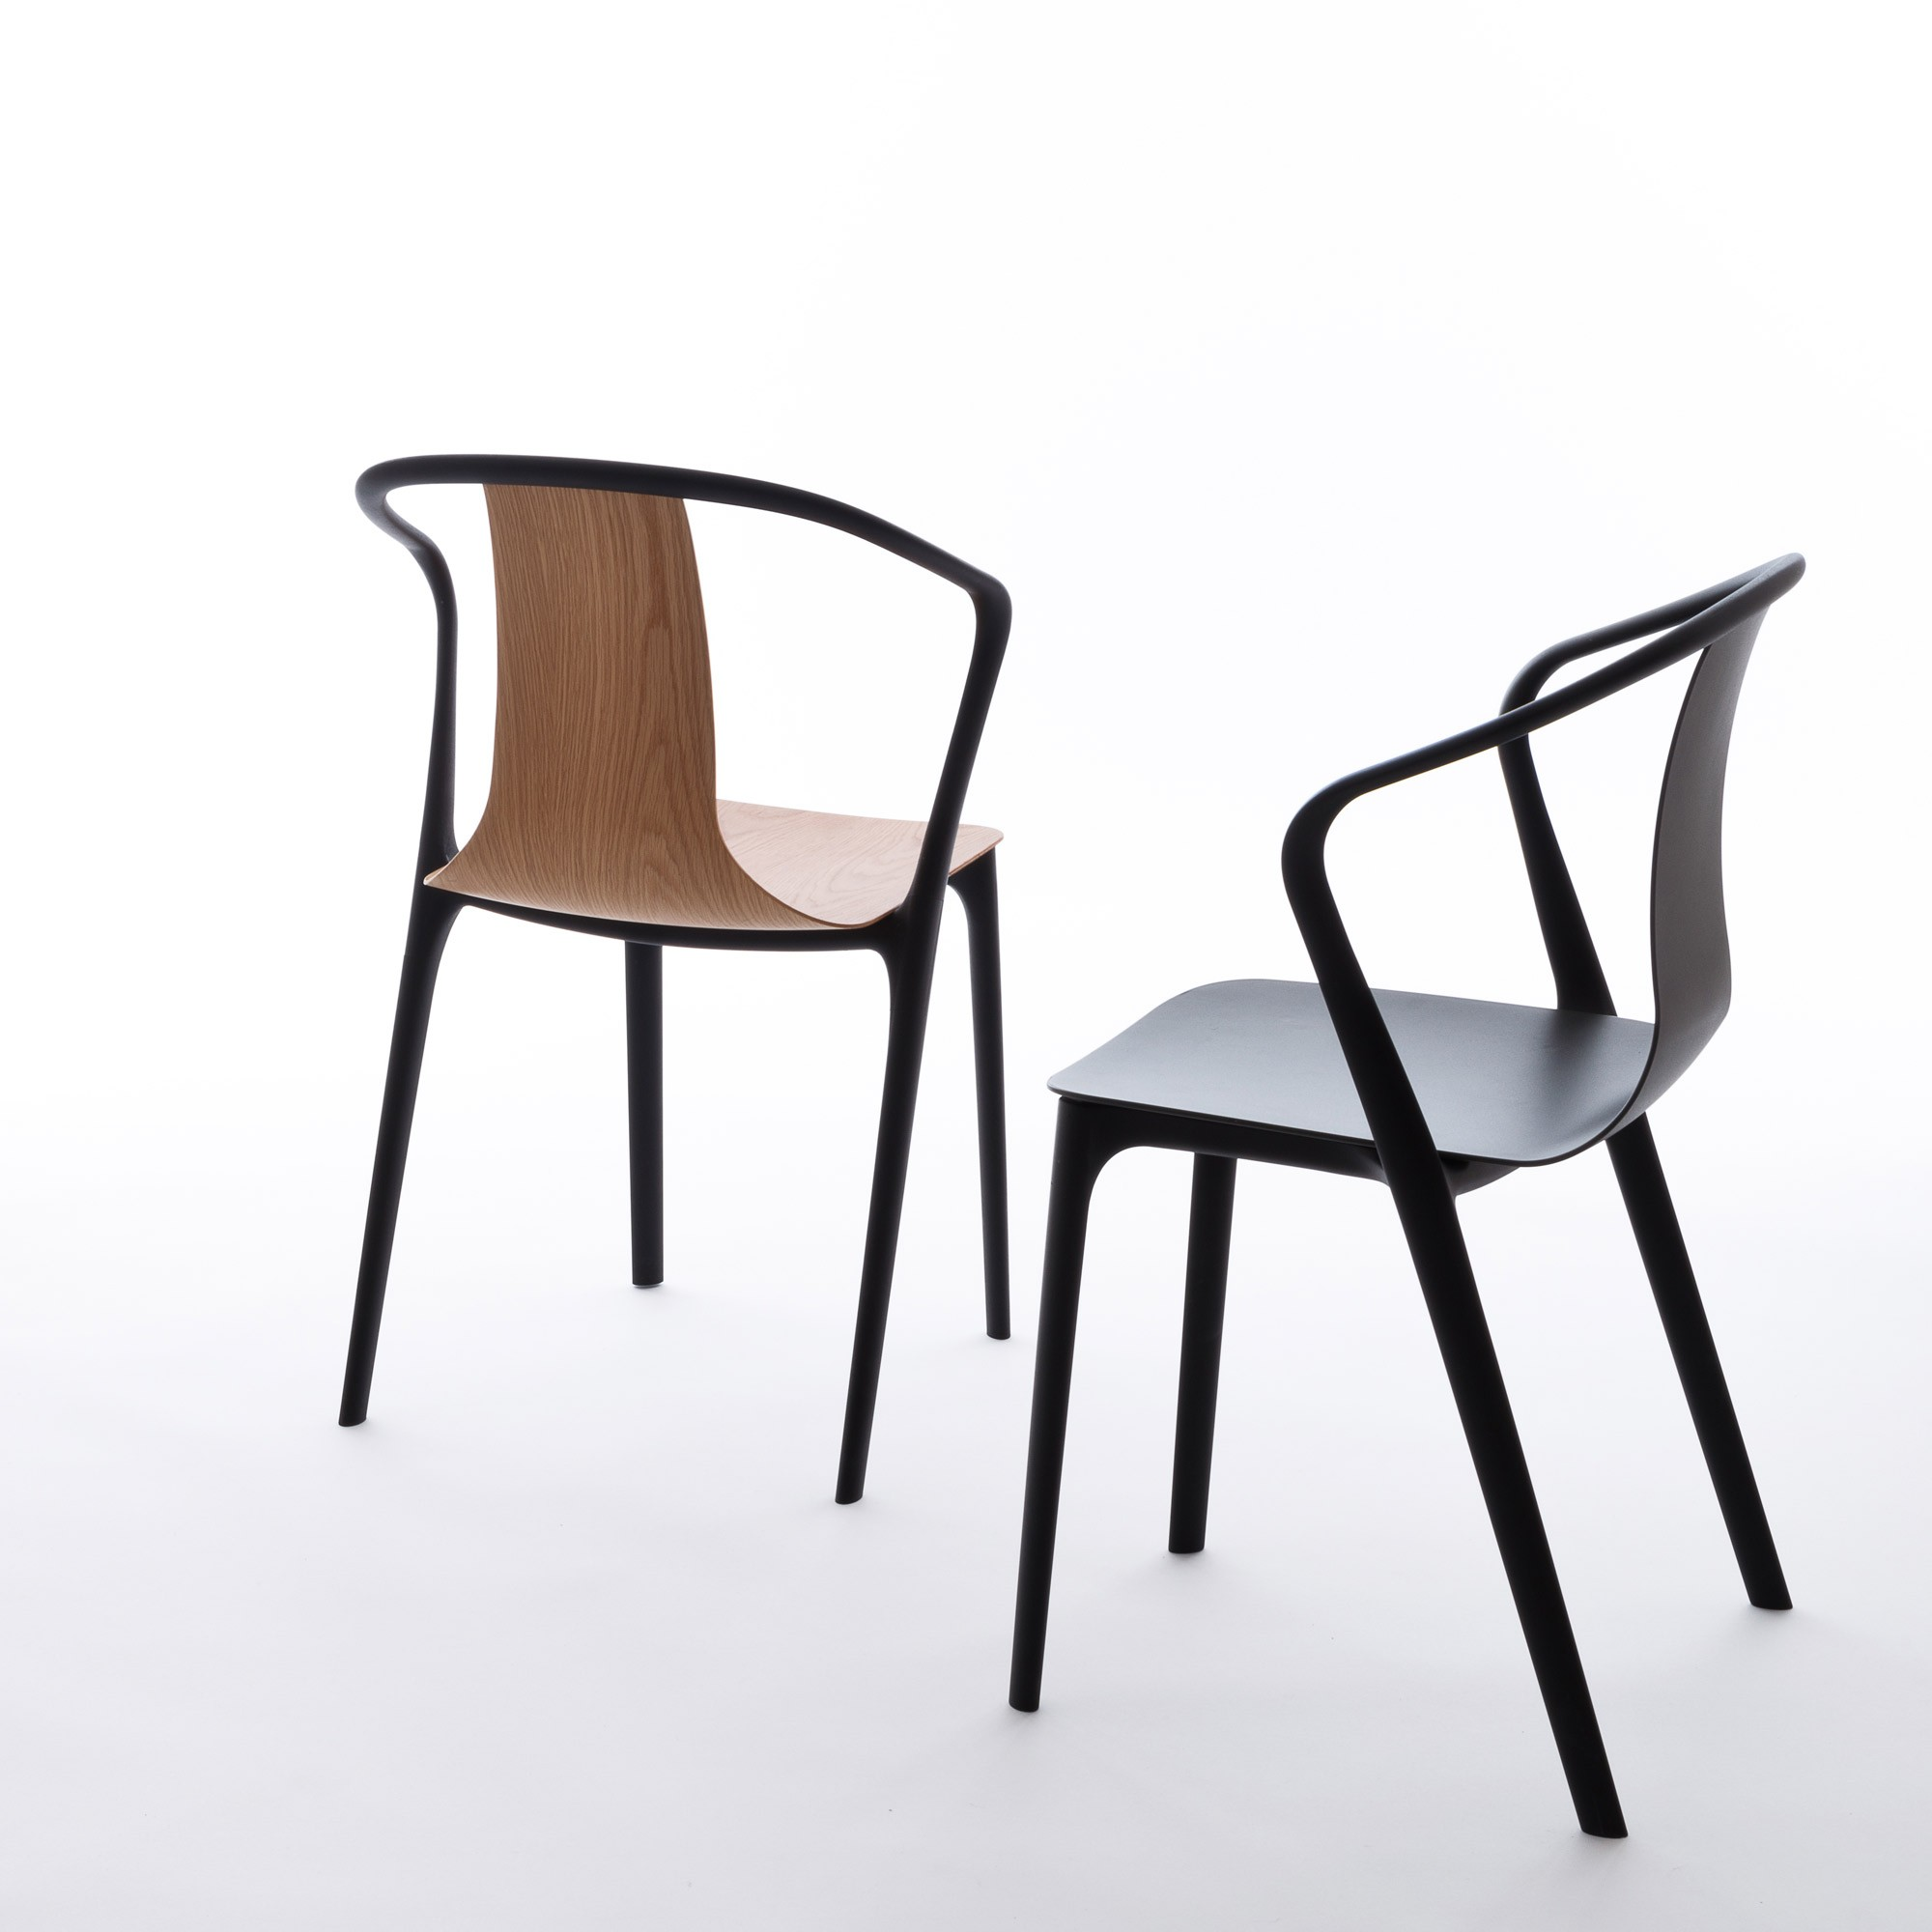 Vitra furniture - interior decor brands from NW3 interiors